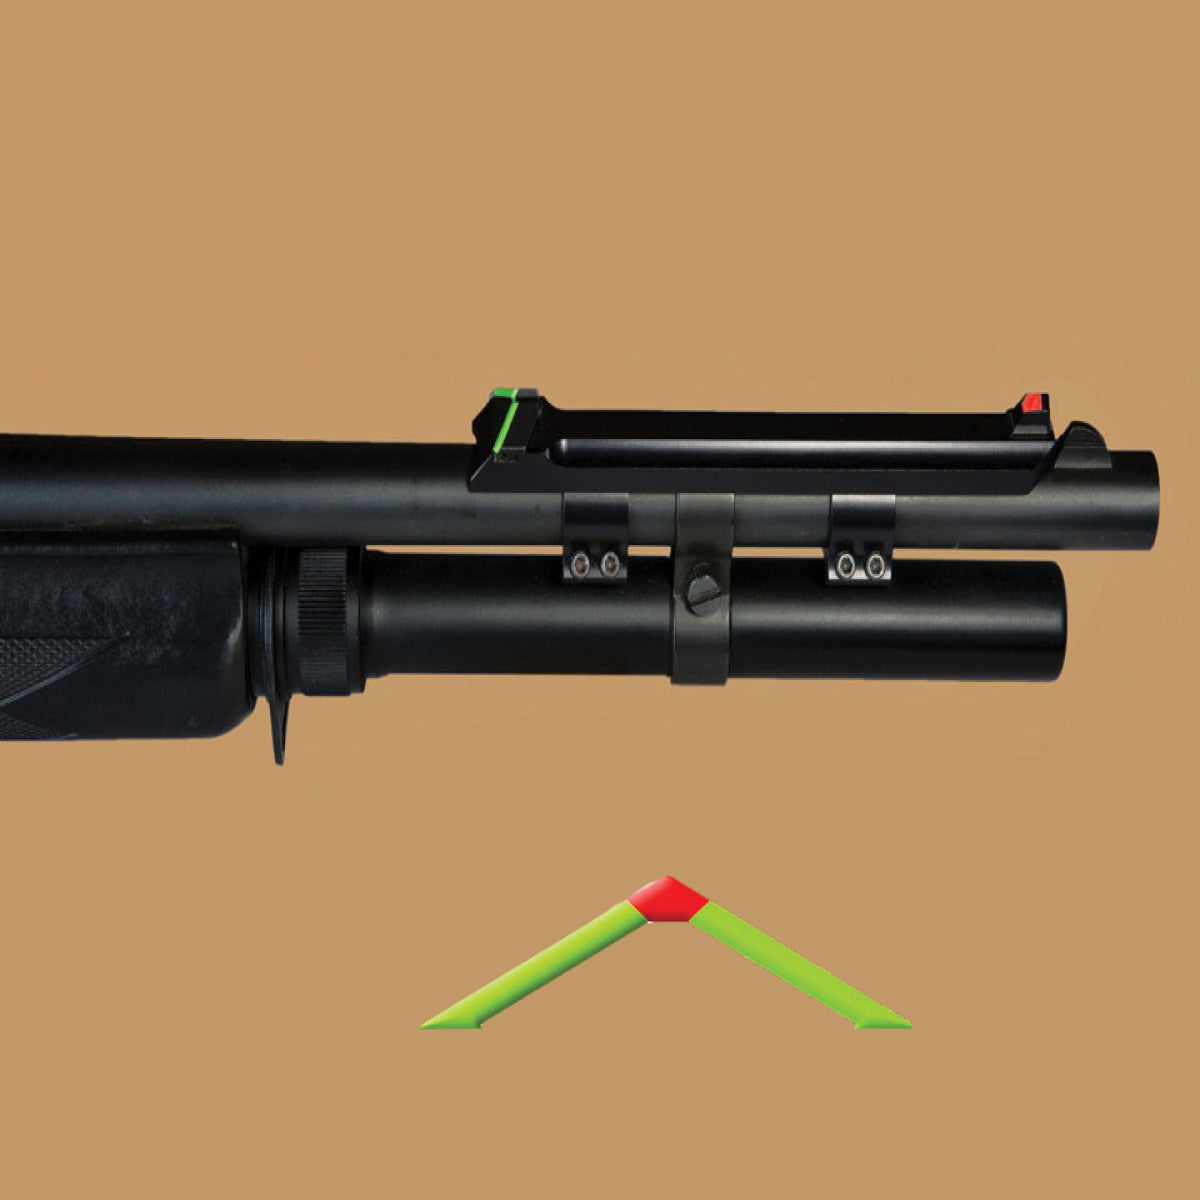 ATPS - BENELLI SPLIT-RING SHOTGUN (